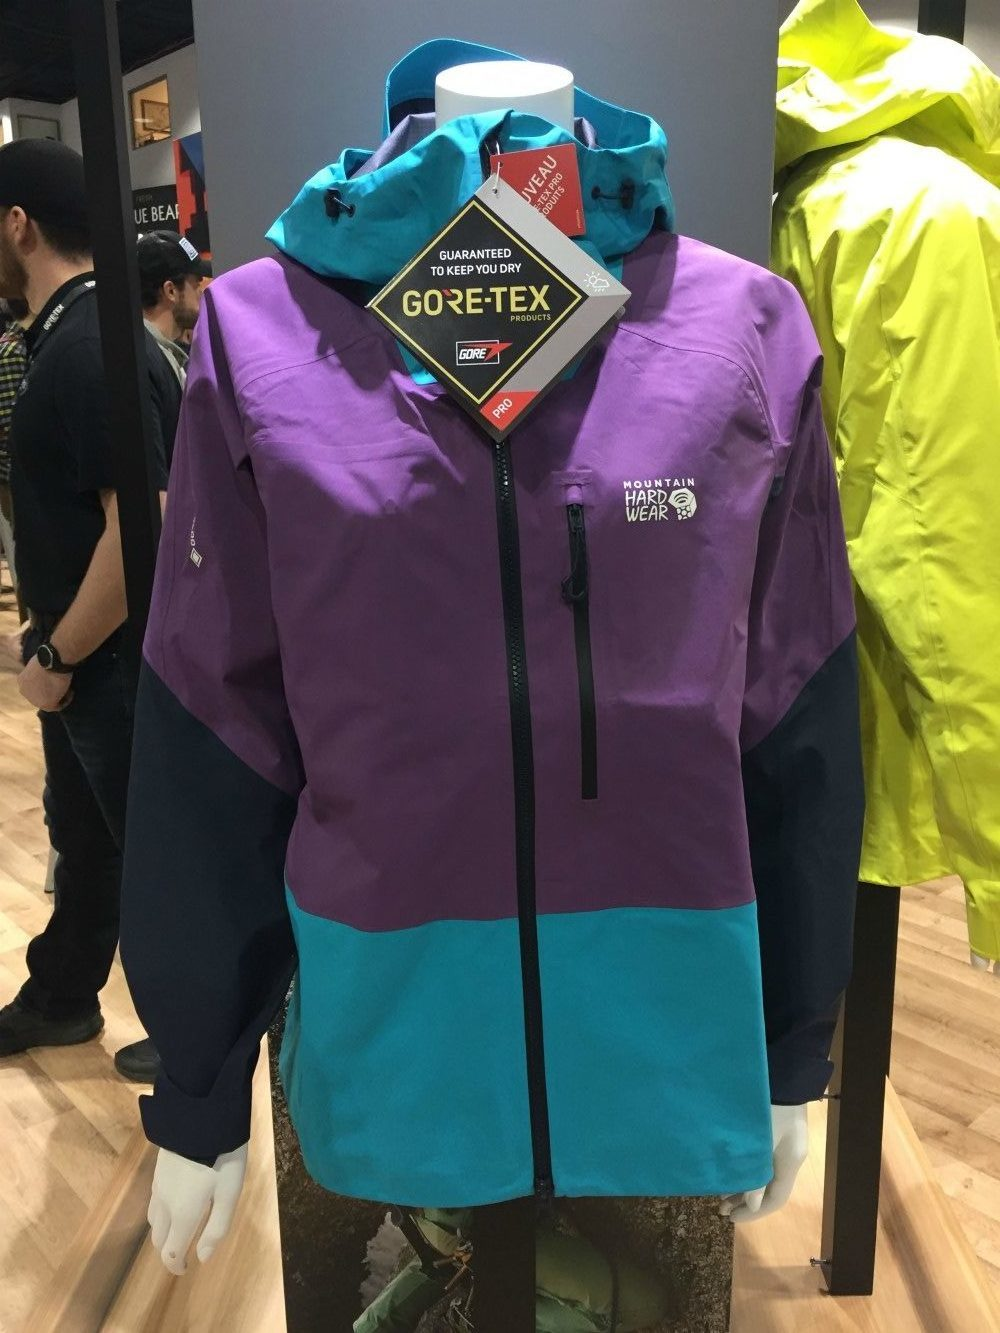 Gore-Tex Pro Shell technologies display enhanced durability, stretch and breathability.